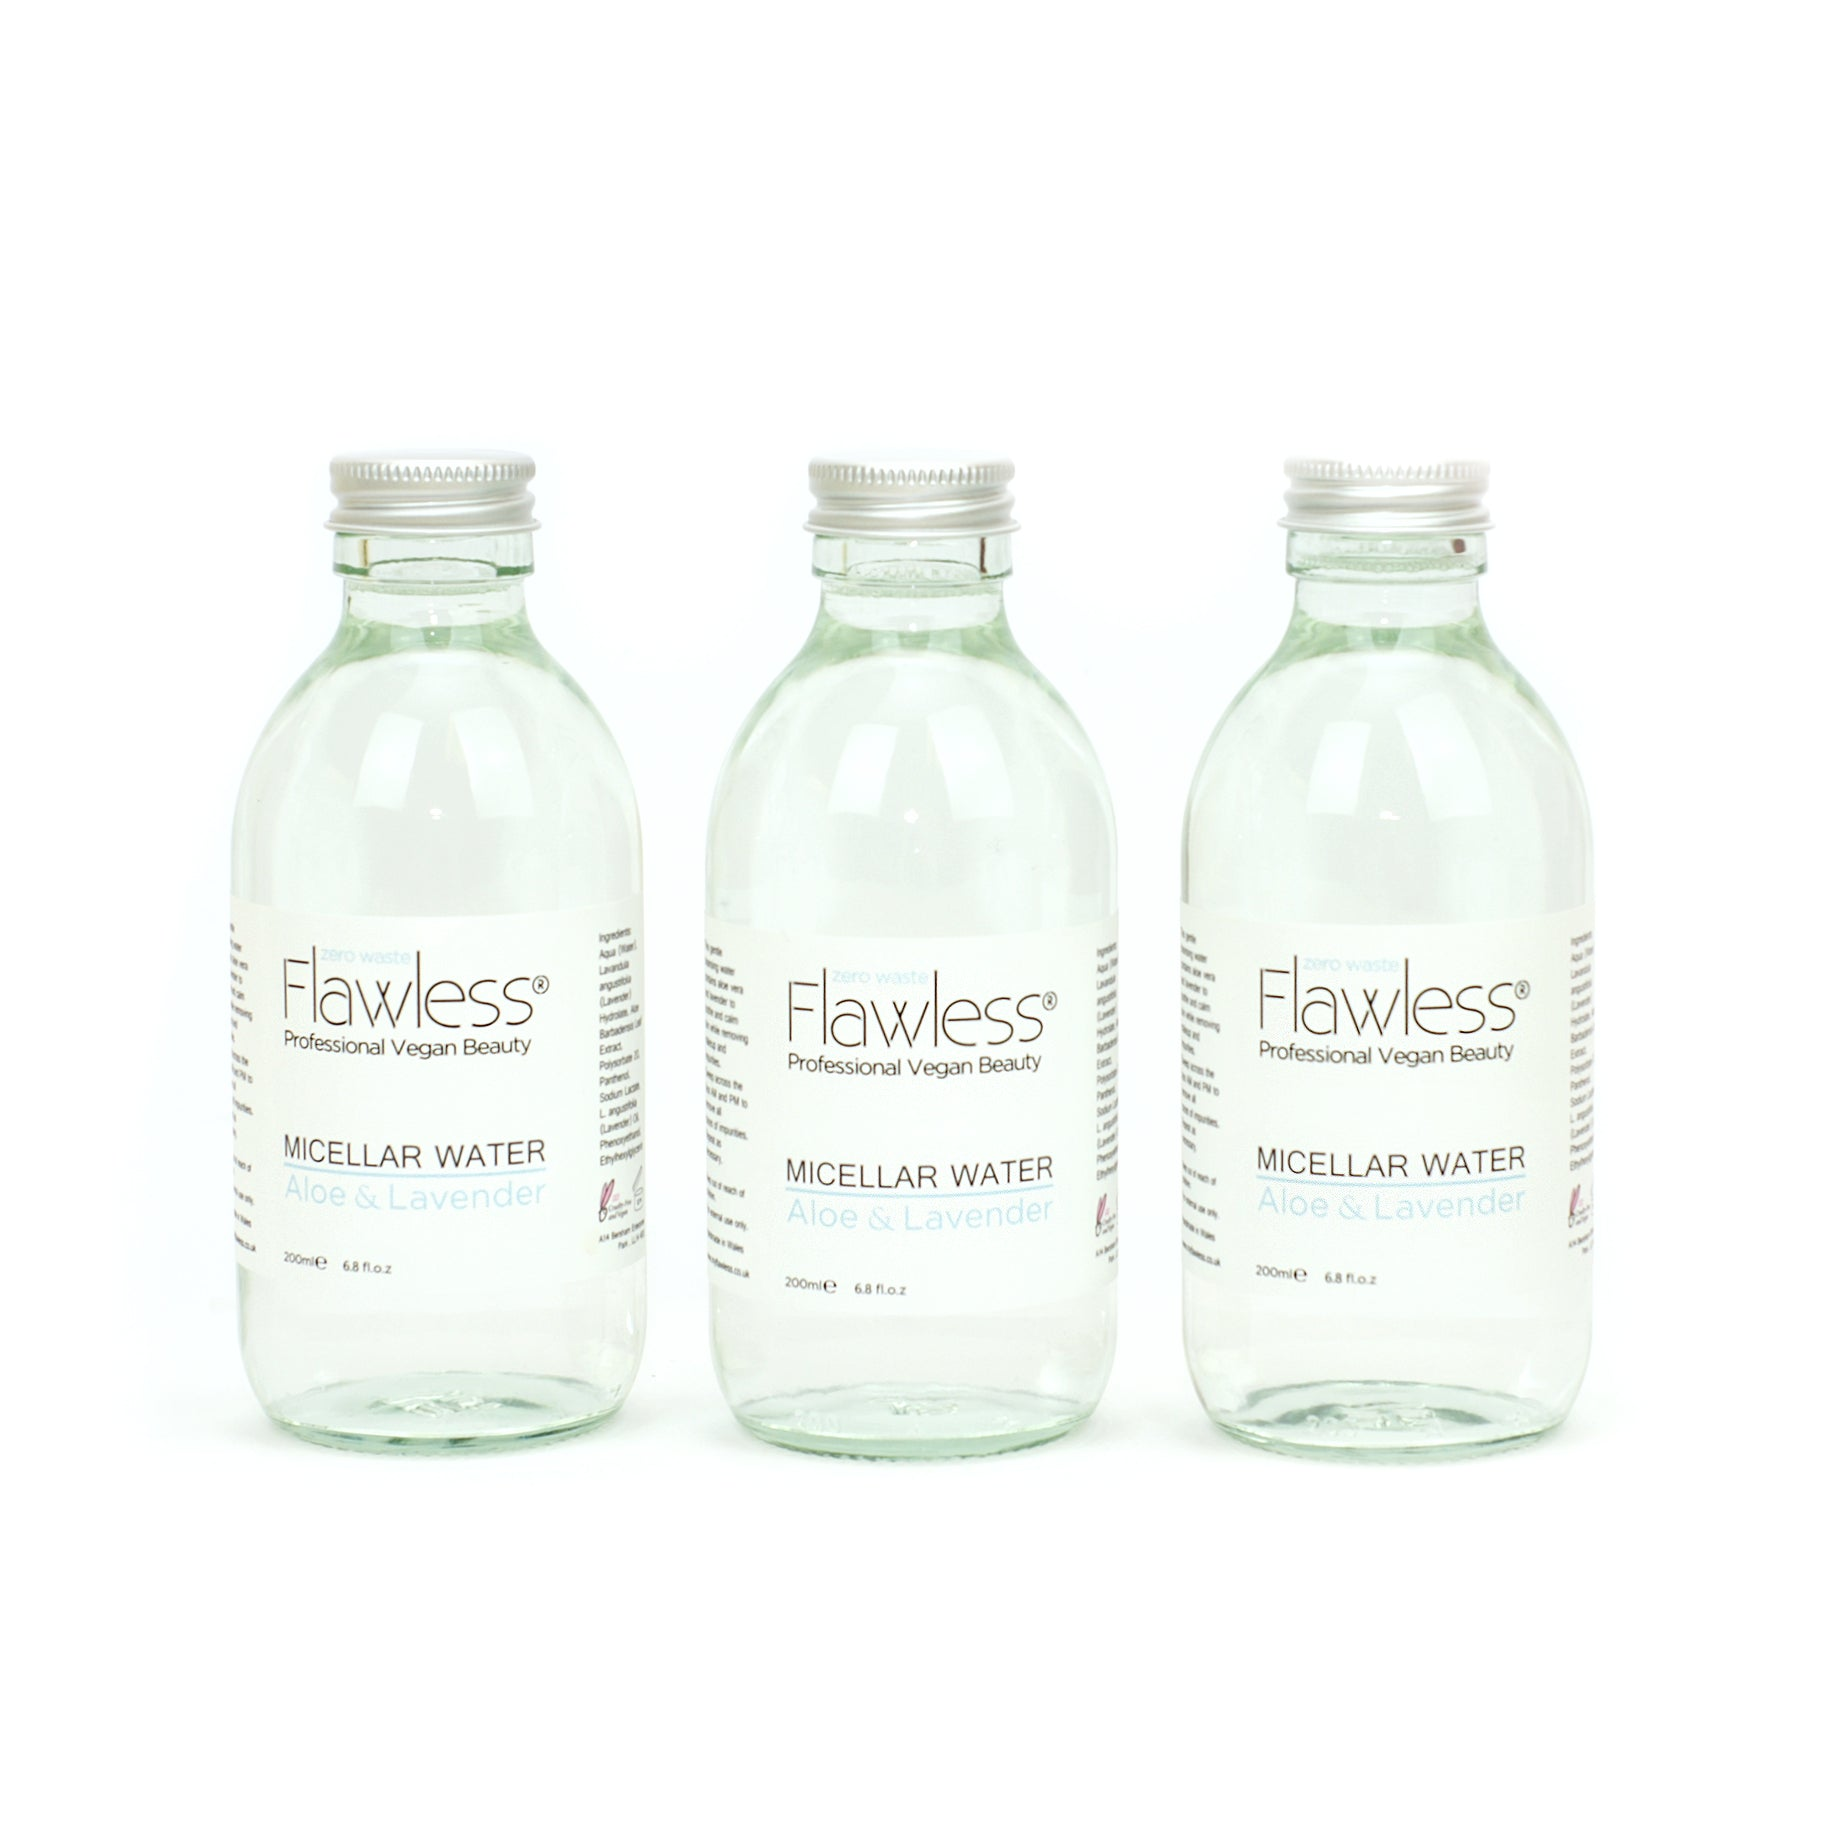 Micellar Water - Aloe and Lavender